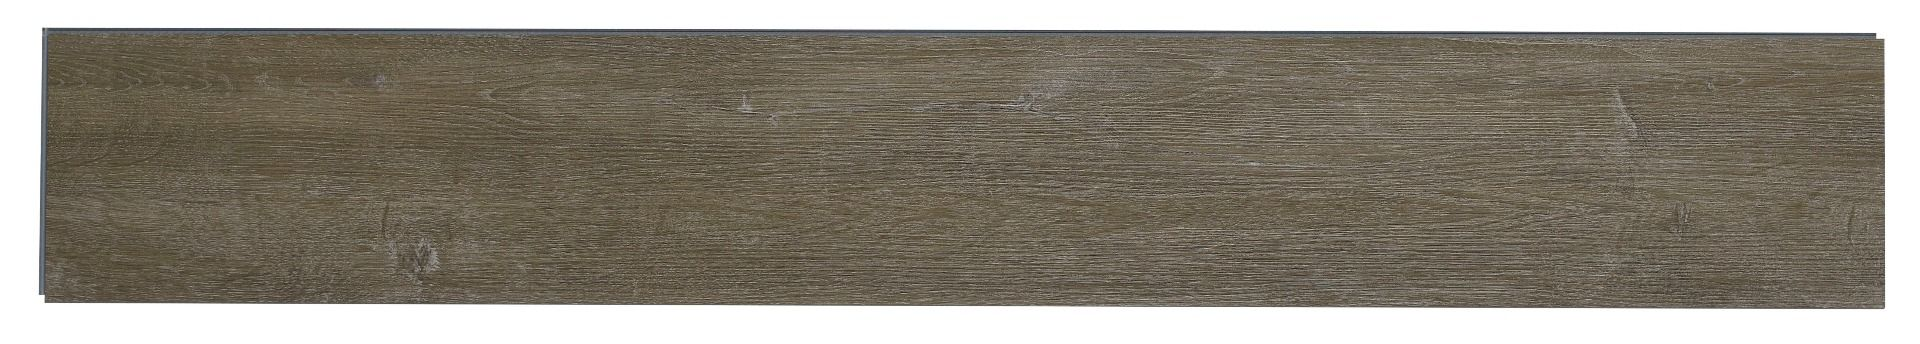 £25.49 per m² - LVT - Luxury Click-Fit ClickLux Vinyl Flooring - Antique Cedar